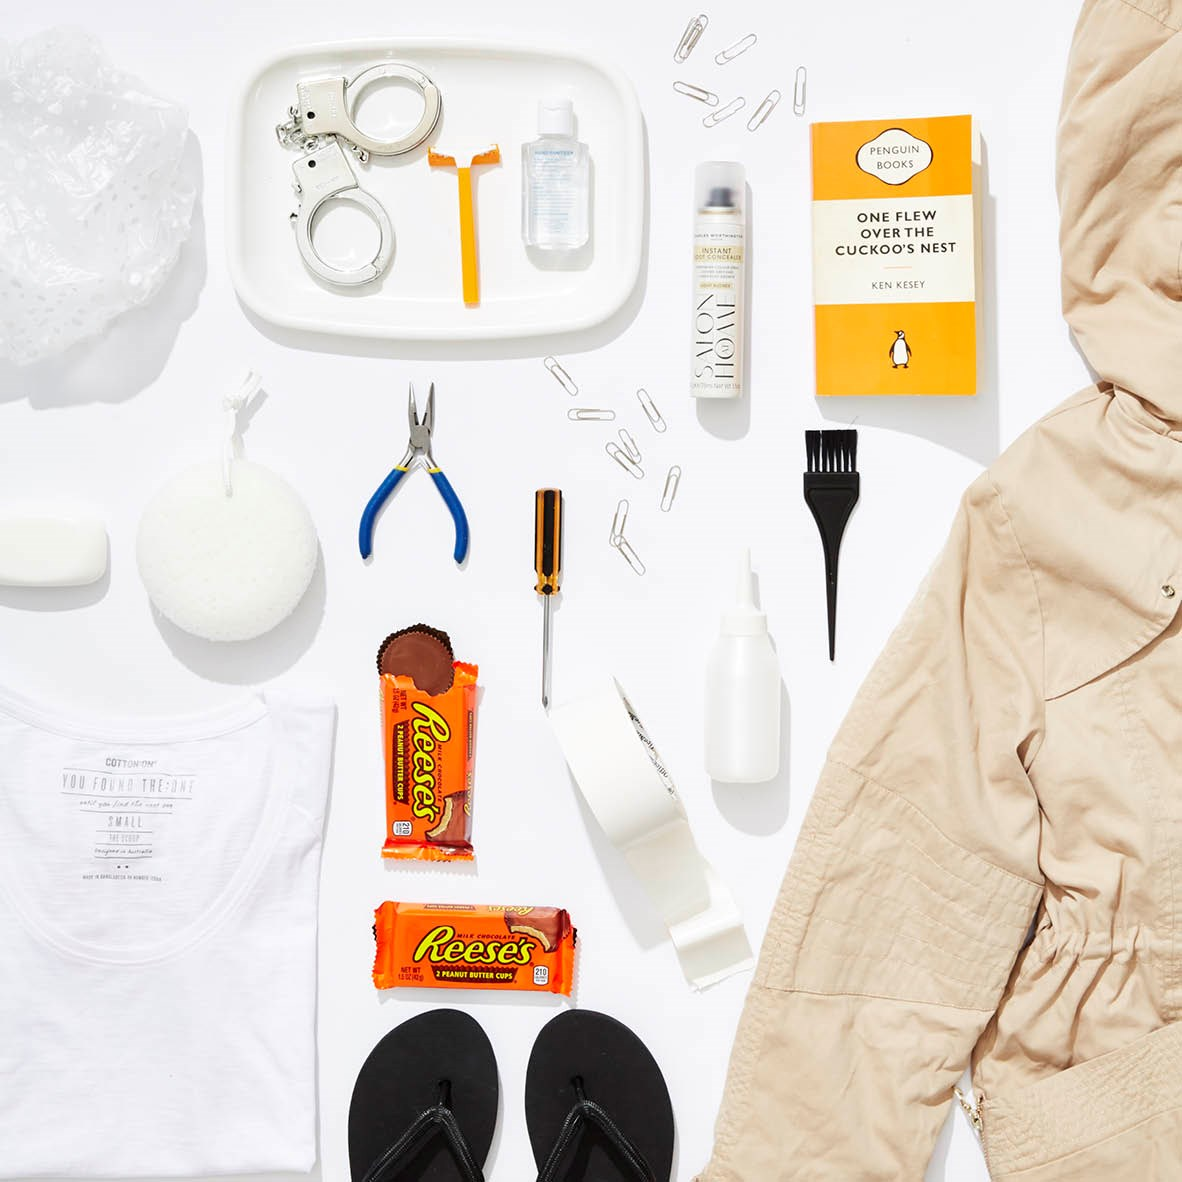 This is EXACTLY what we imagine our favourite fictional ladies would #FlatLay if we could follow them in real life. **Case in point: Piper Chapman from *Orange Is the New Black*** @piperchapman-oitnb: Only 2 hours and 23 minutes until lunch.🍔🍔 #bored #jailsucks #hittingthevendo #oneflewoverthecuckoosnest #kenkesey #razors #peanutbuttercups #instantrootconcealer #charlesworthington #plierset #parka @forevernew_official #tshirt @cottonon #thongs @targetaus